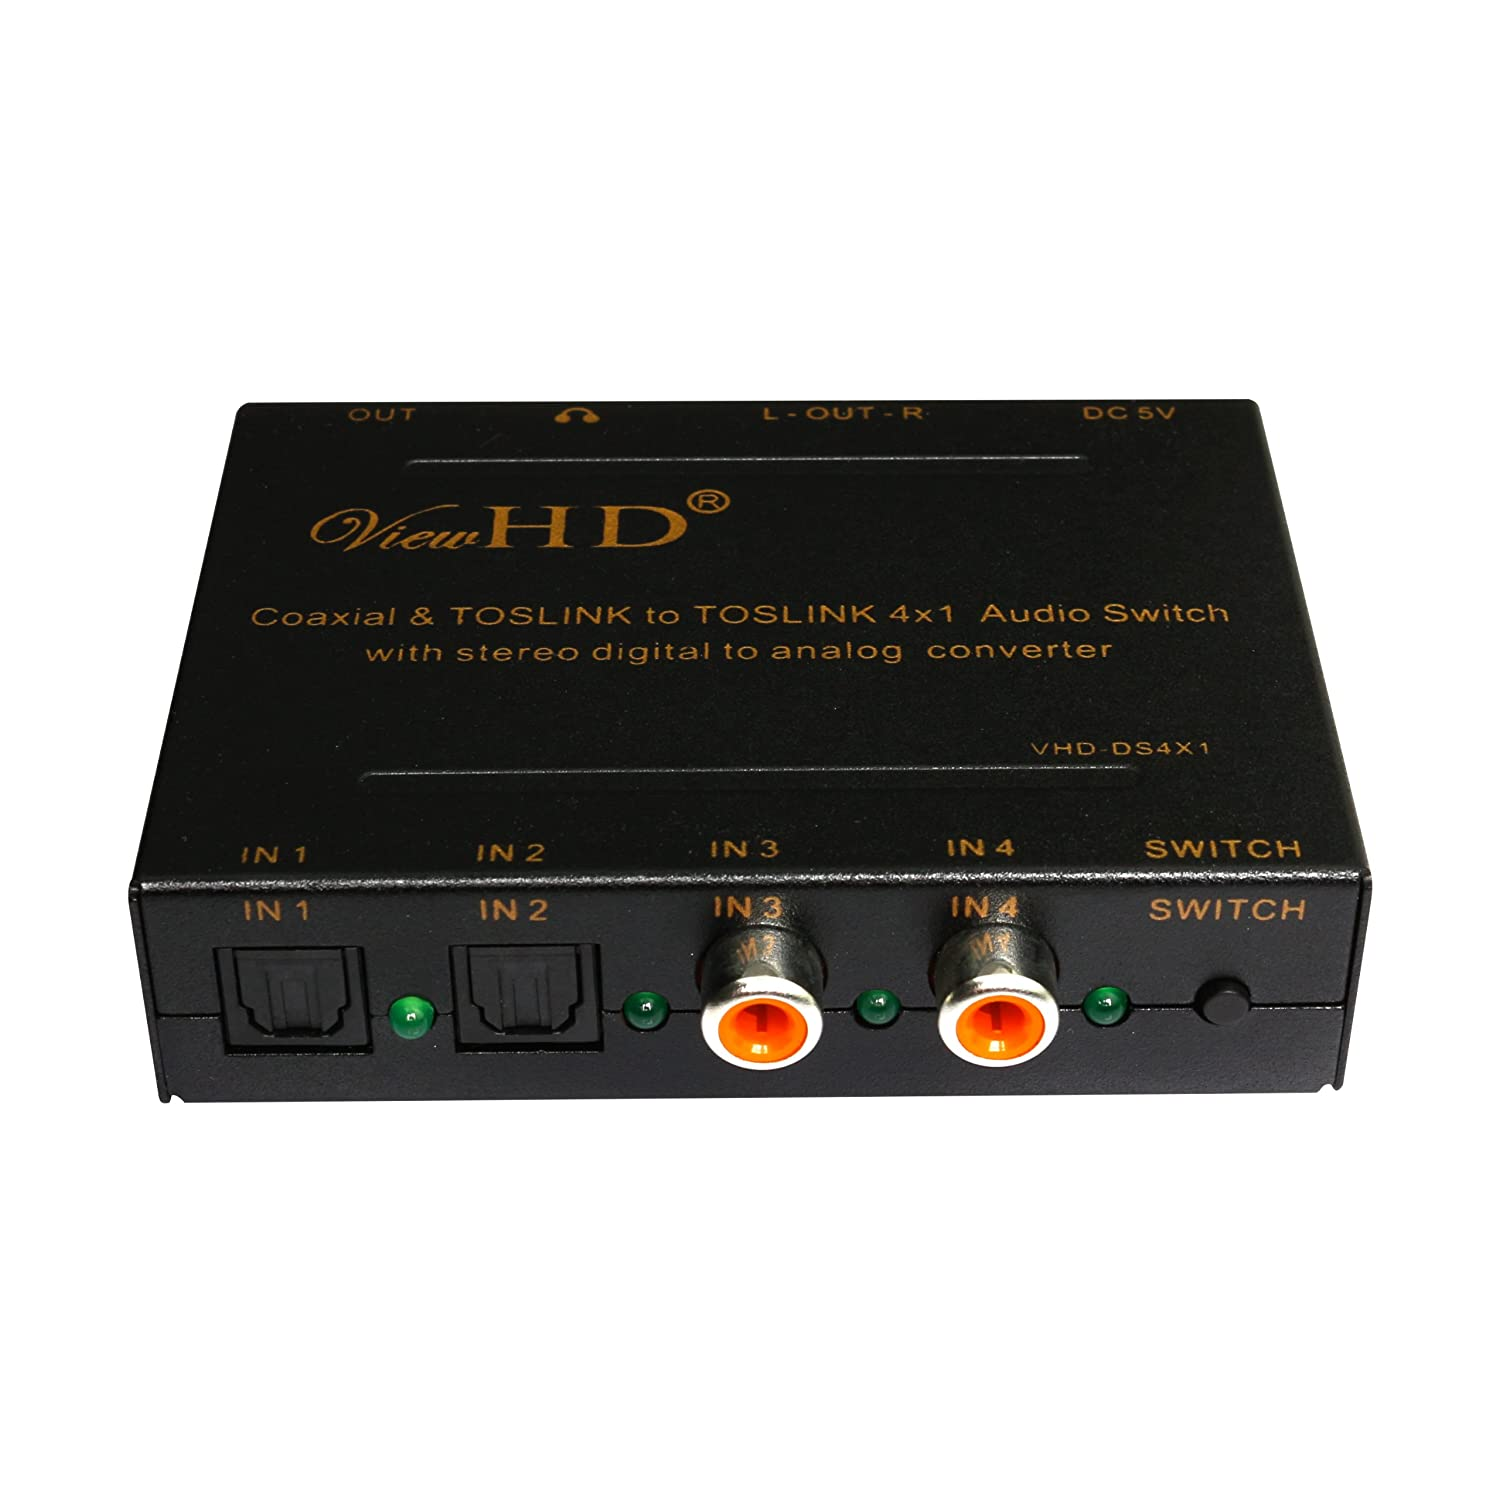 Amazon.com: ViewHD Digital Audio 4x1 Switch | (TOSLINK x2 & Coaxial x2) to TOSLINK + Analog L/R + Stereo Headphone Outputs | Model: VHD-DS4X1: Electronics